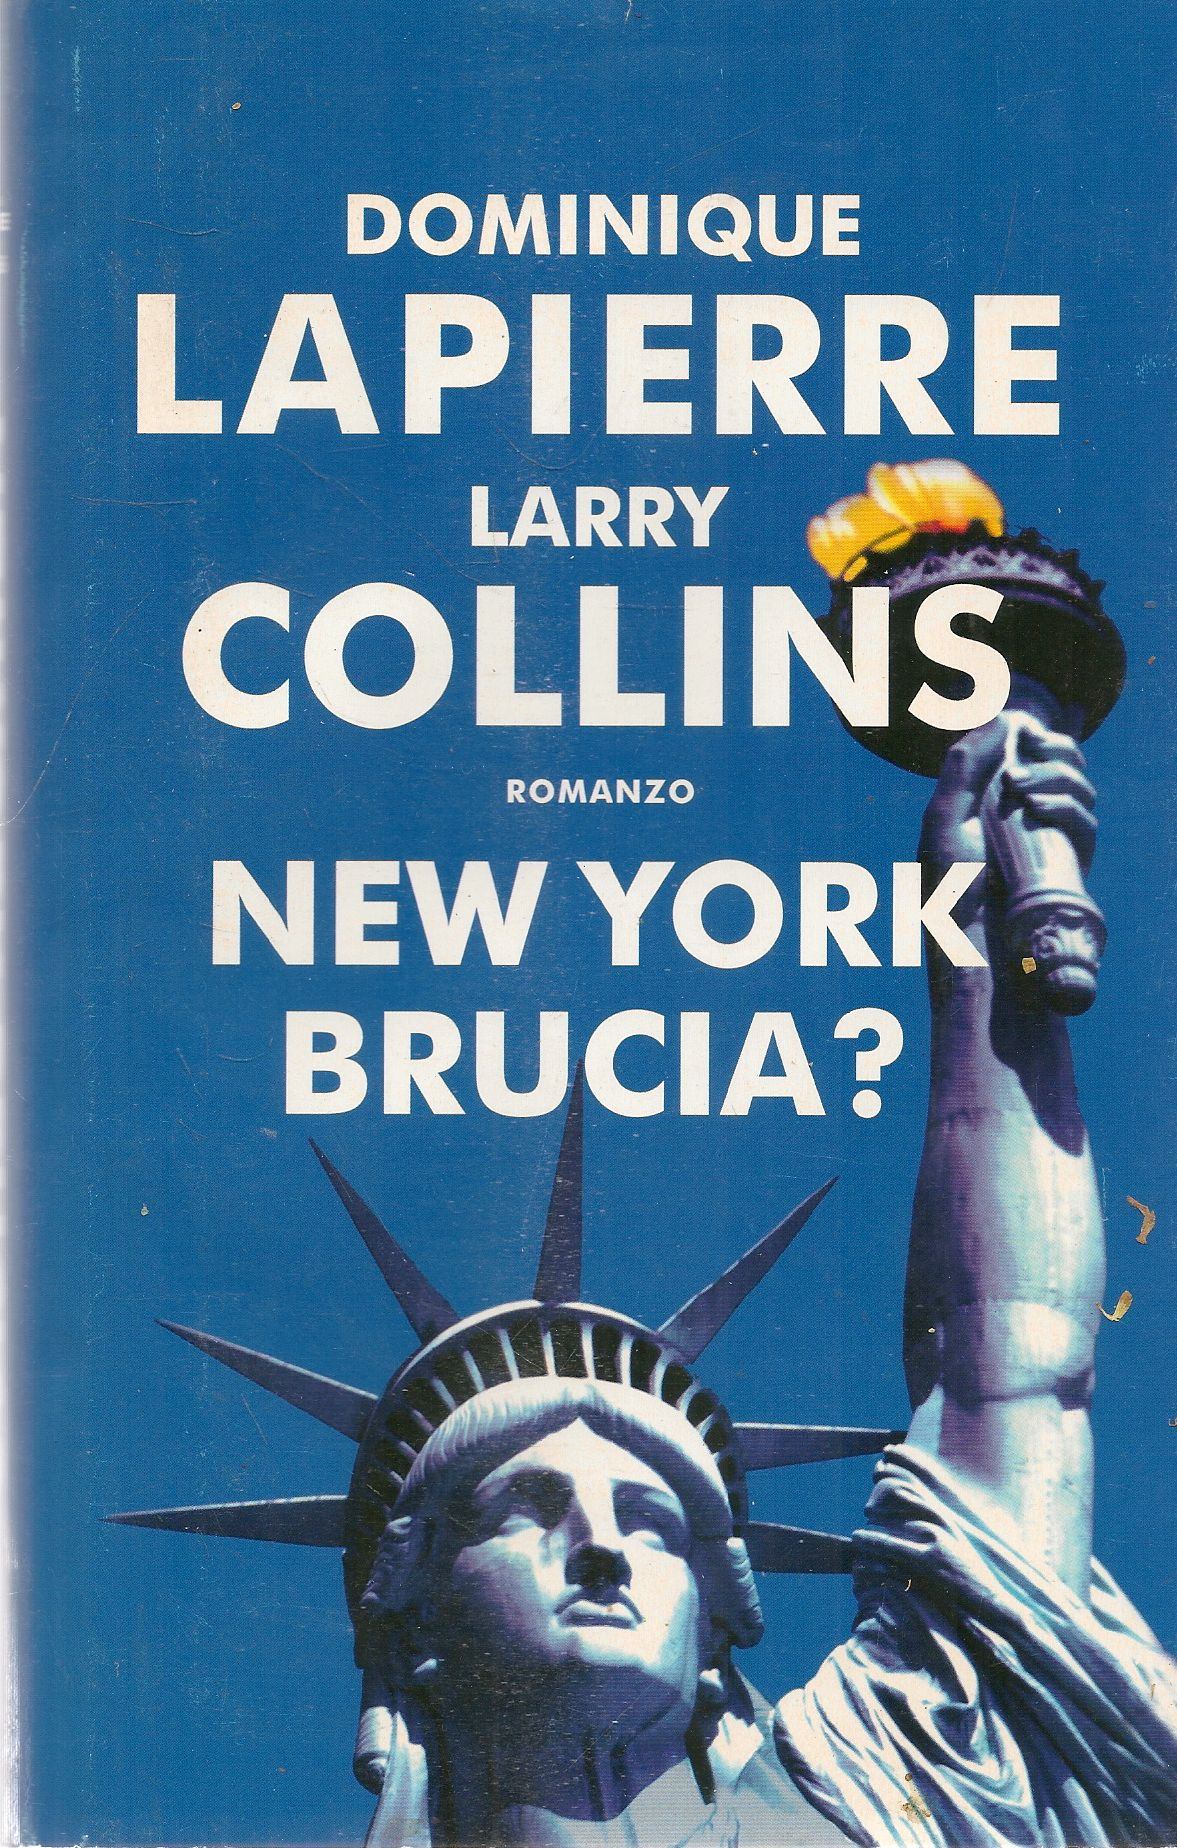 NEW YORK BRUCIA? - DOMINQUE LAPIERRE-LARRY COLLINS